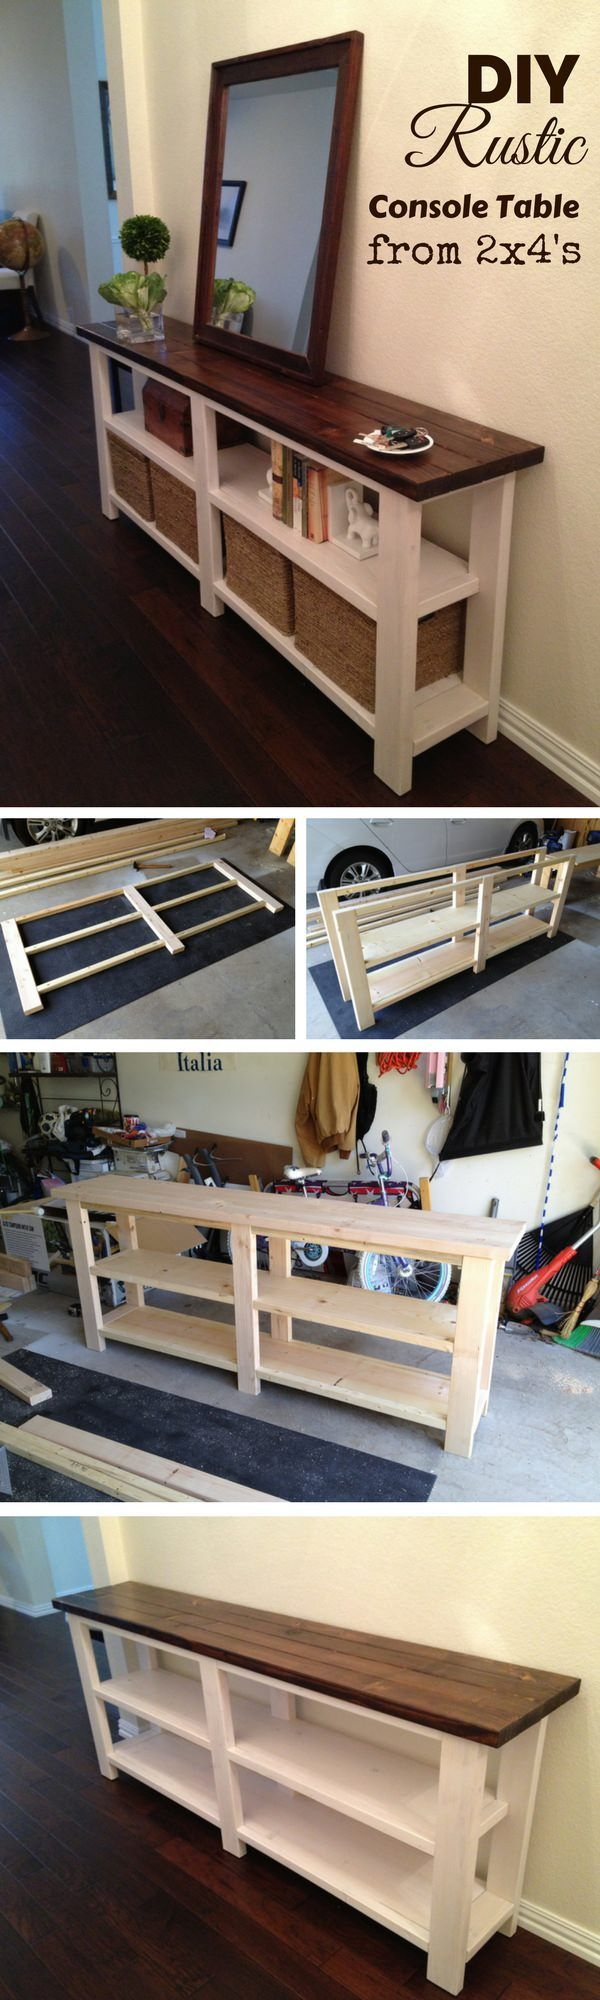 20 Crafty 2×4 DIY Projects That You Can Easily Make